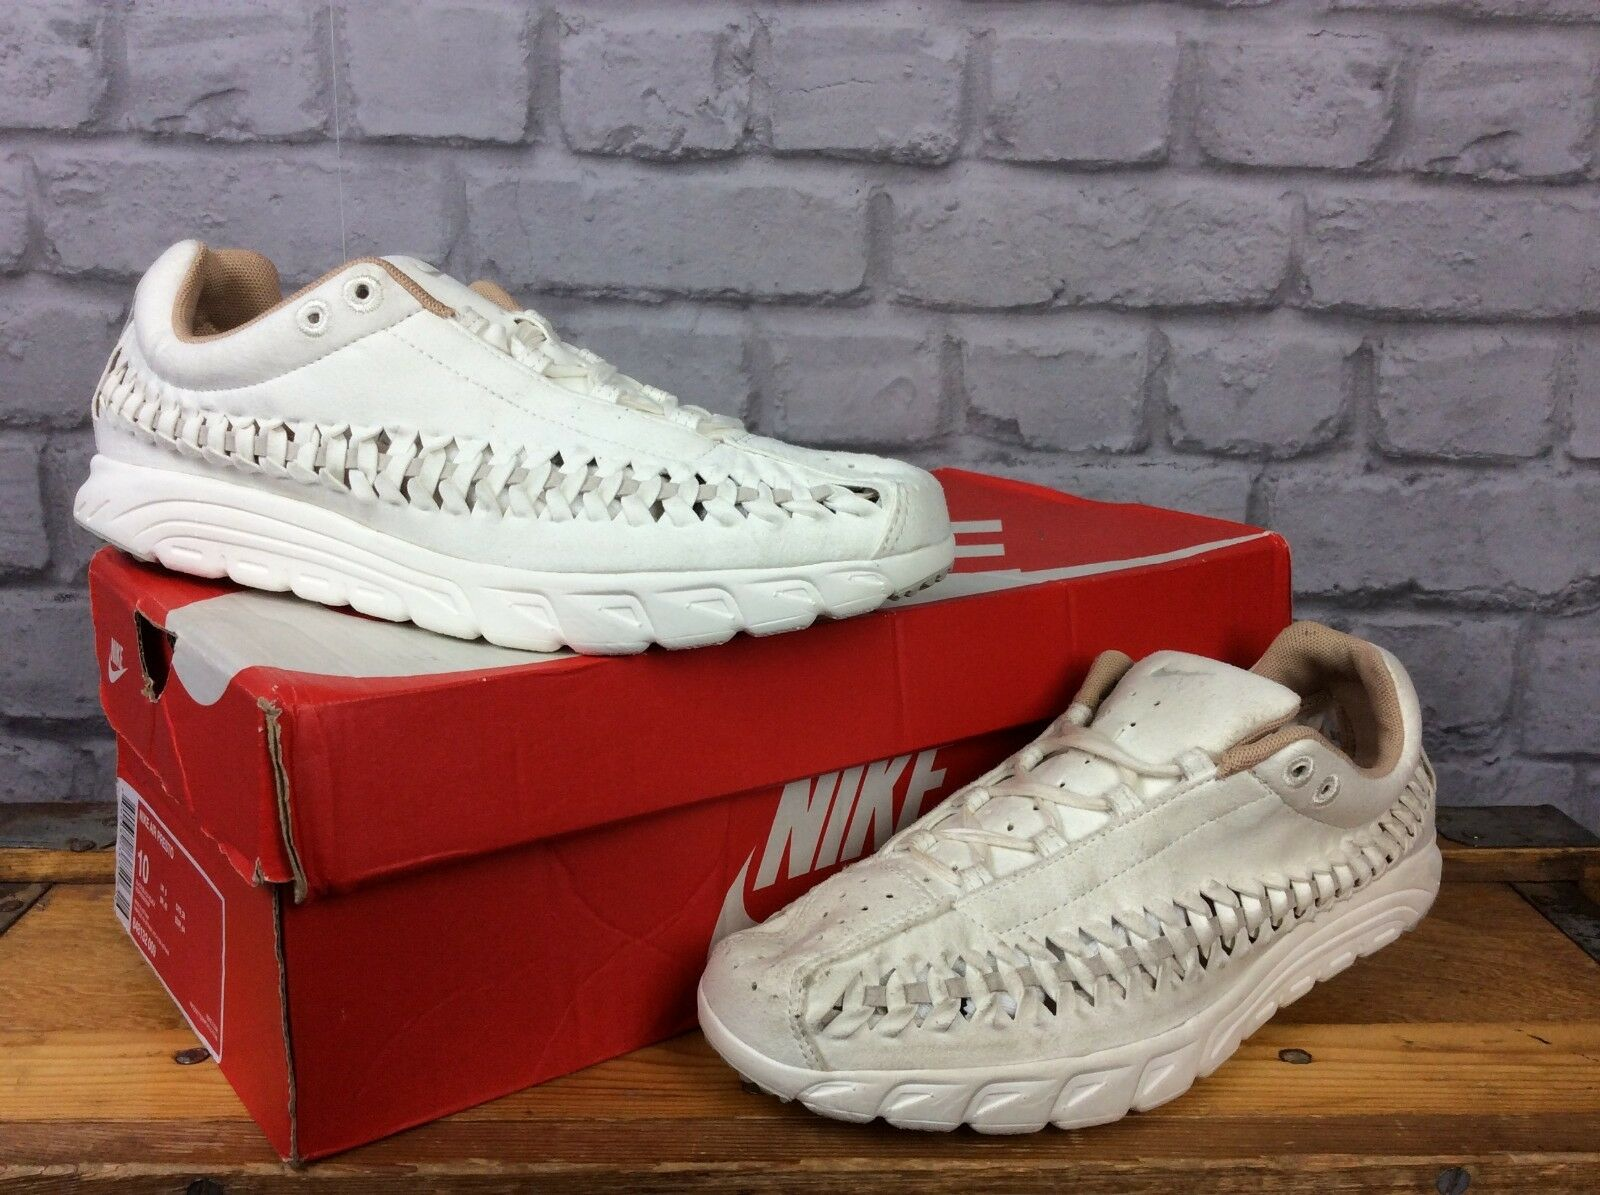 NIKE LADIES6 EU 40 NEUTRAL CREAM MAYFLY WOVEN SUEDE TRAINERS